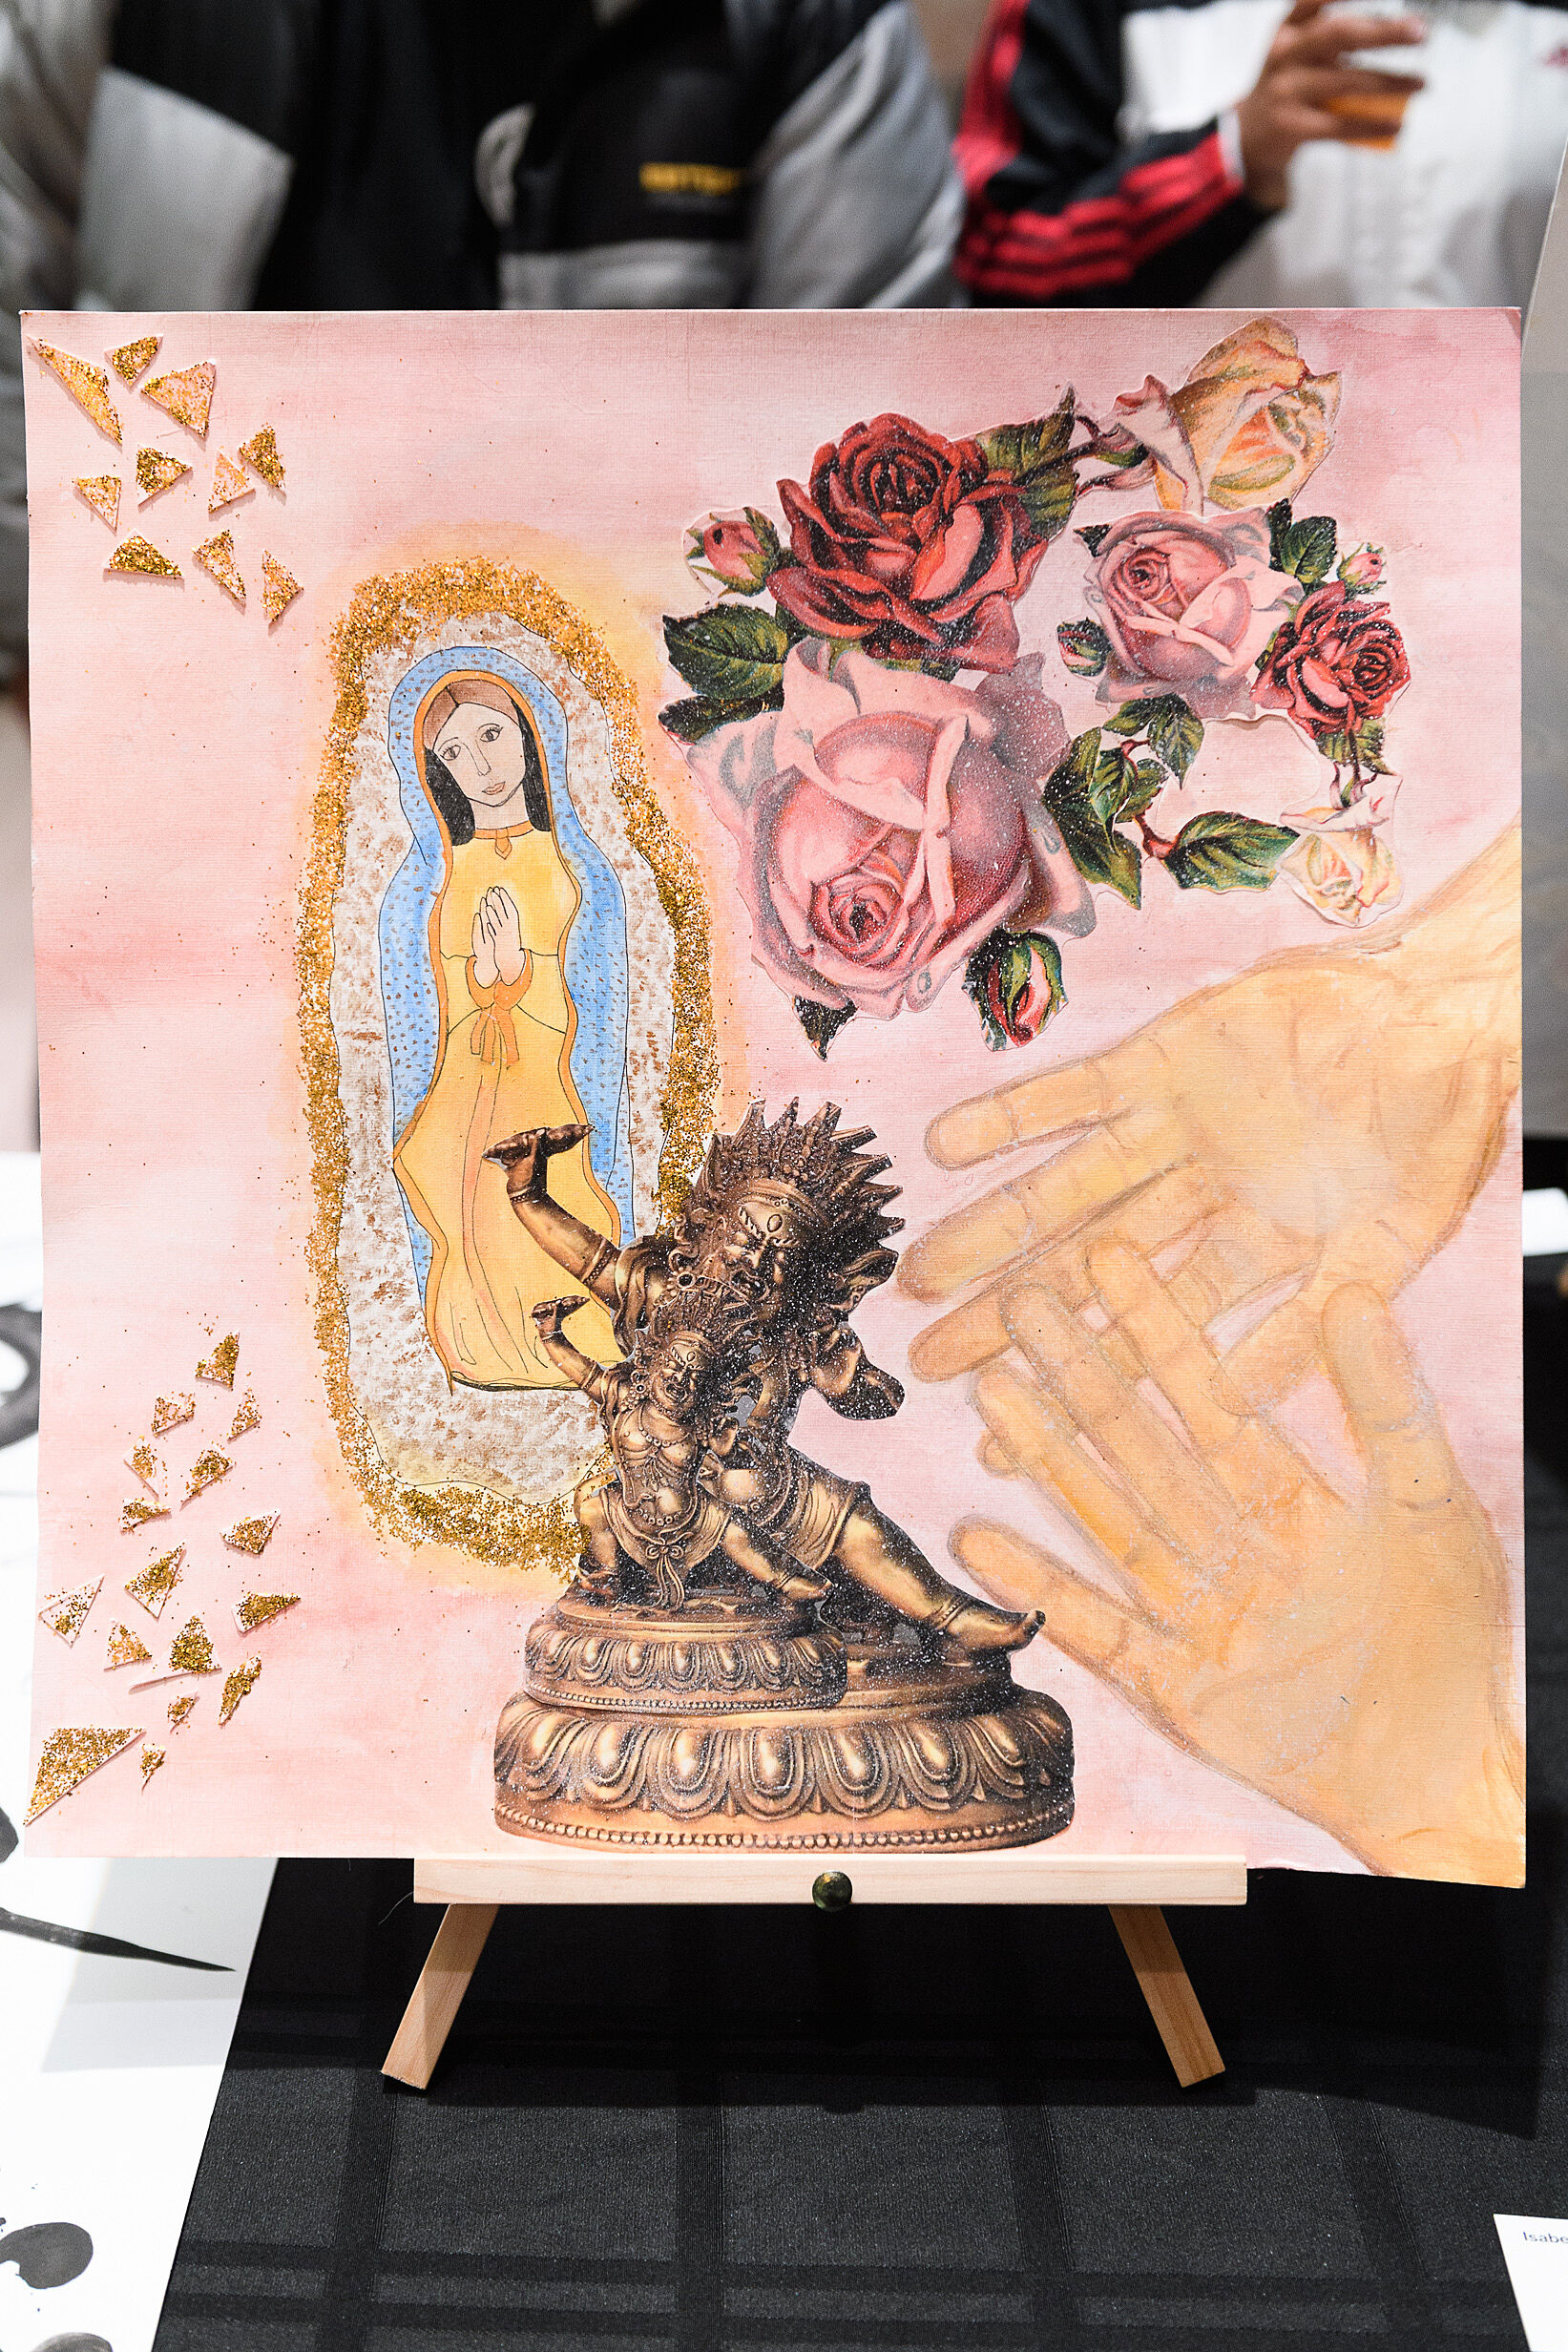 Hands, flowers, virgin mary and gold sparkles on a painting.